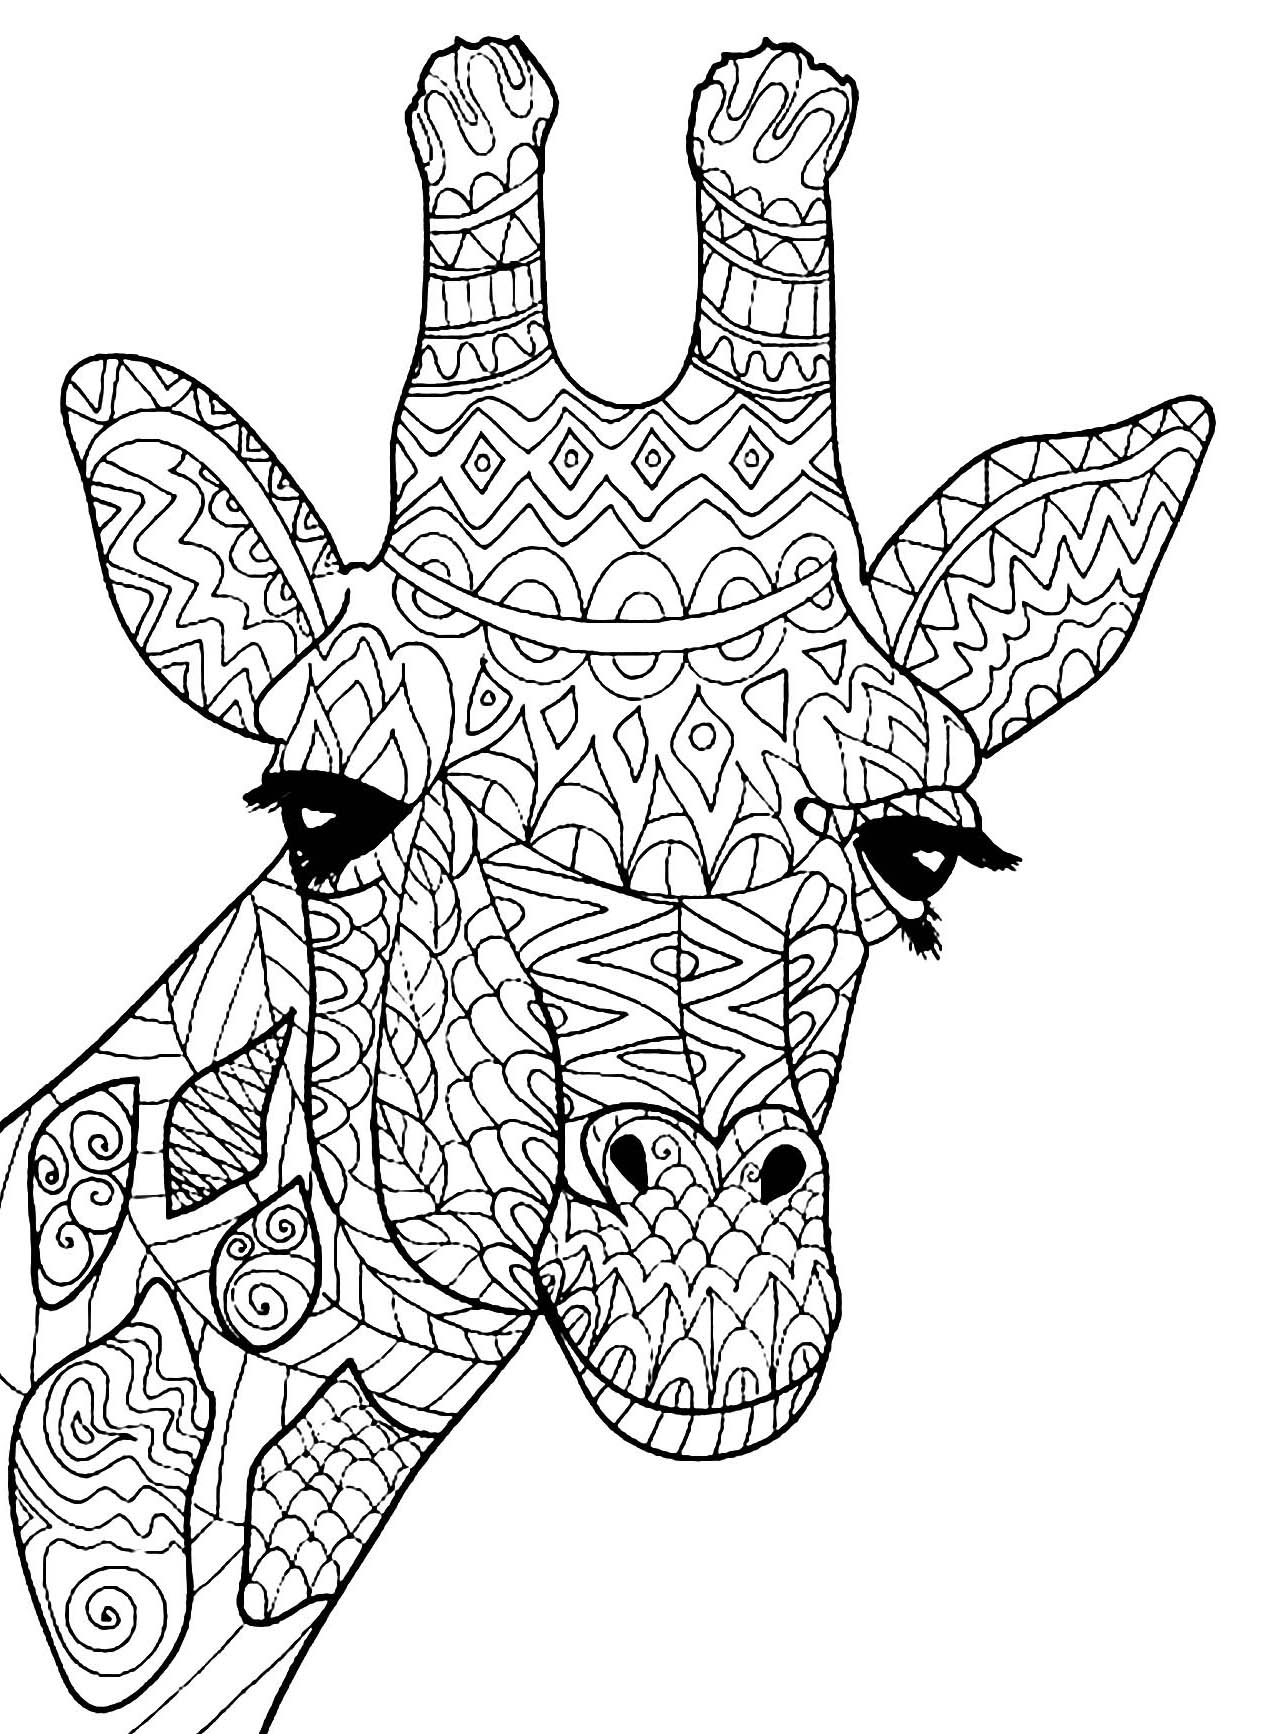 giraffes coloring pages giraffes for kids giraffes kids coloring pages giraffes coloring pages